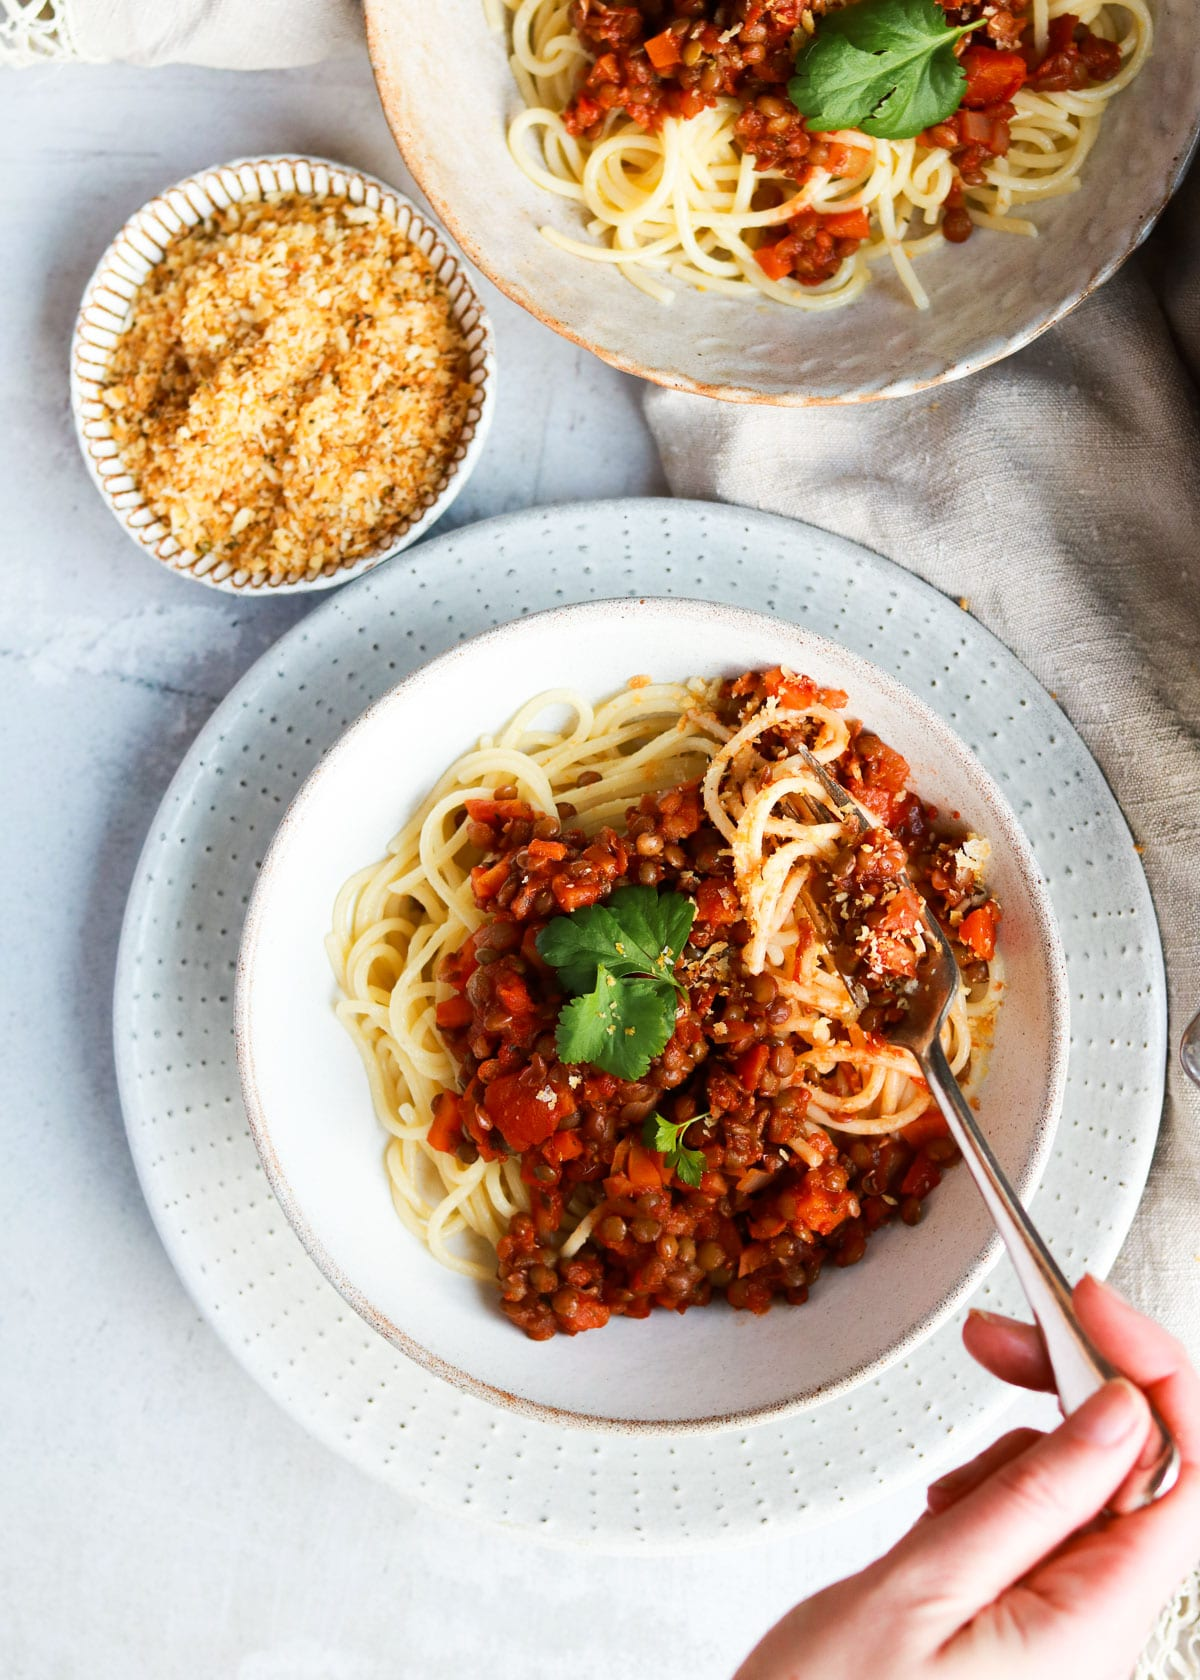 Lentil Bolognese being scooped up with a fork.